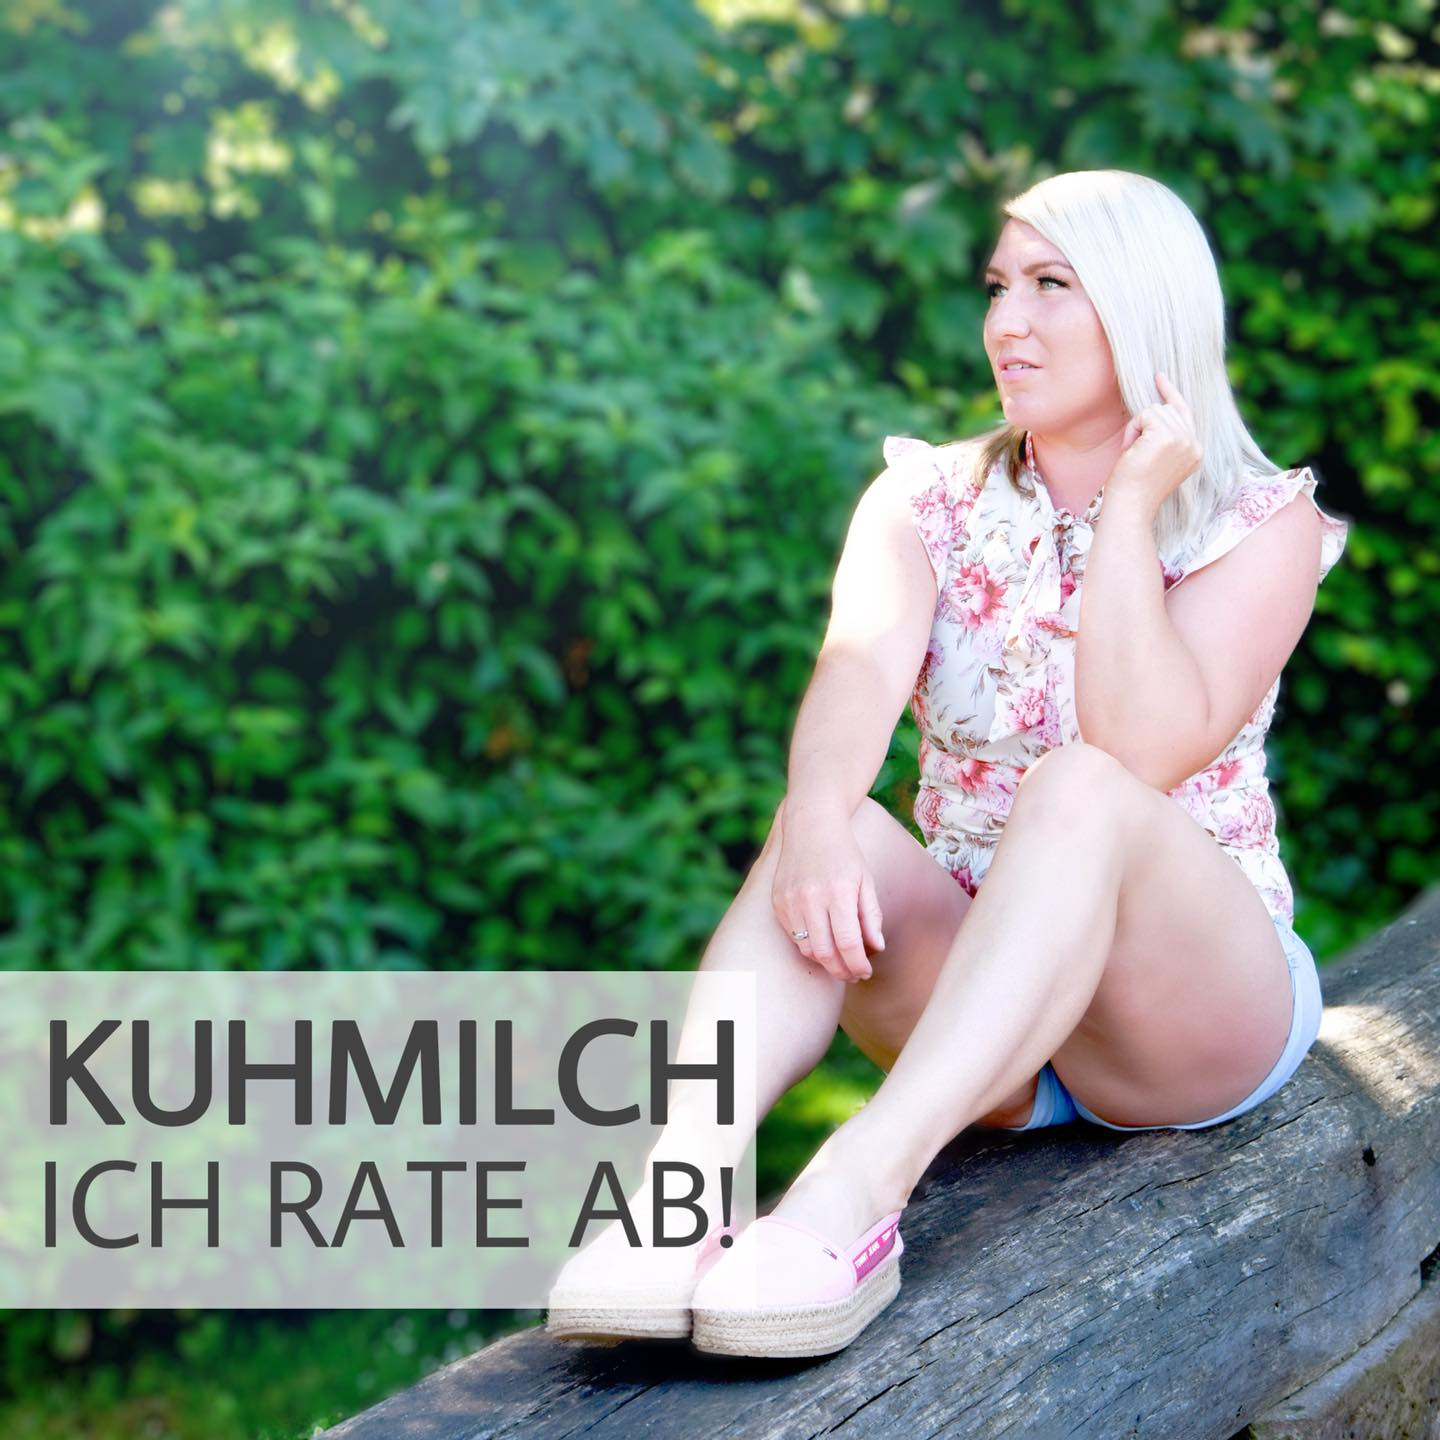 Kuhmilch - Ich rate ab!